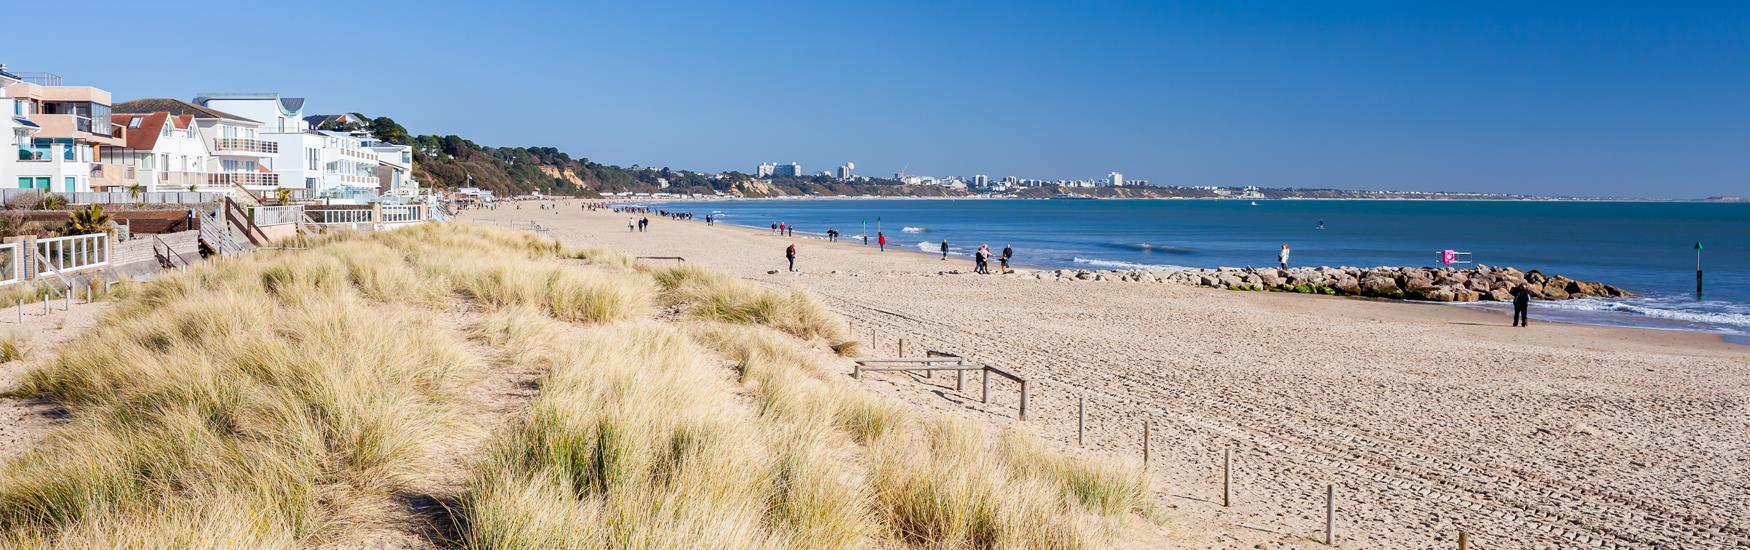 Landscape view of Sandbanks Beach with buildings on the left hand side and sandy beach on right with sea in background